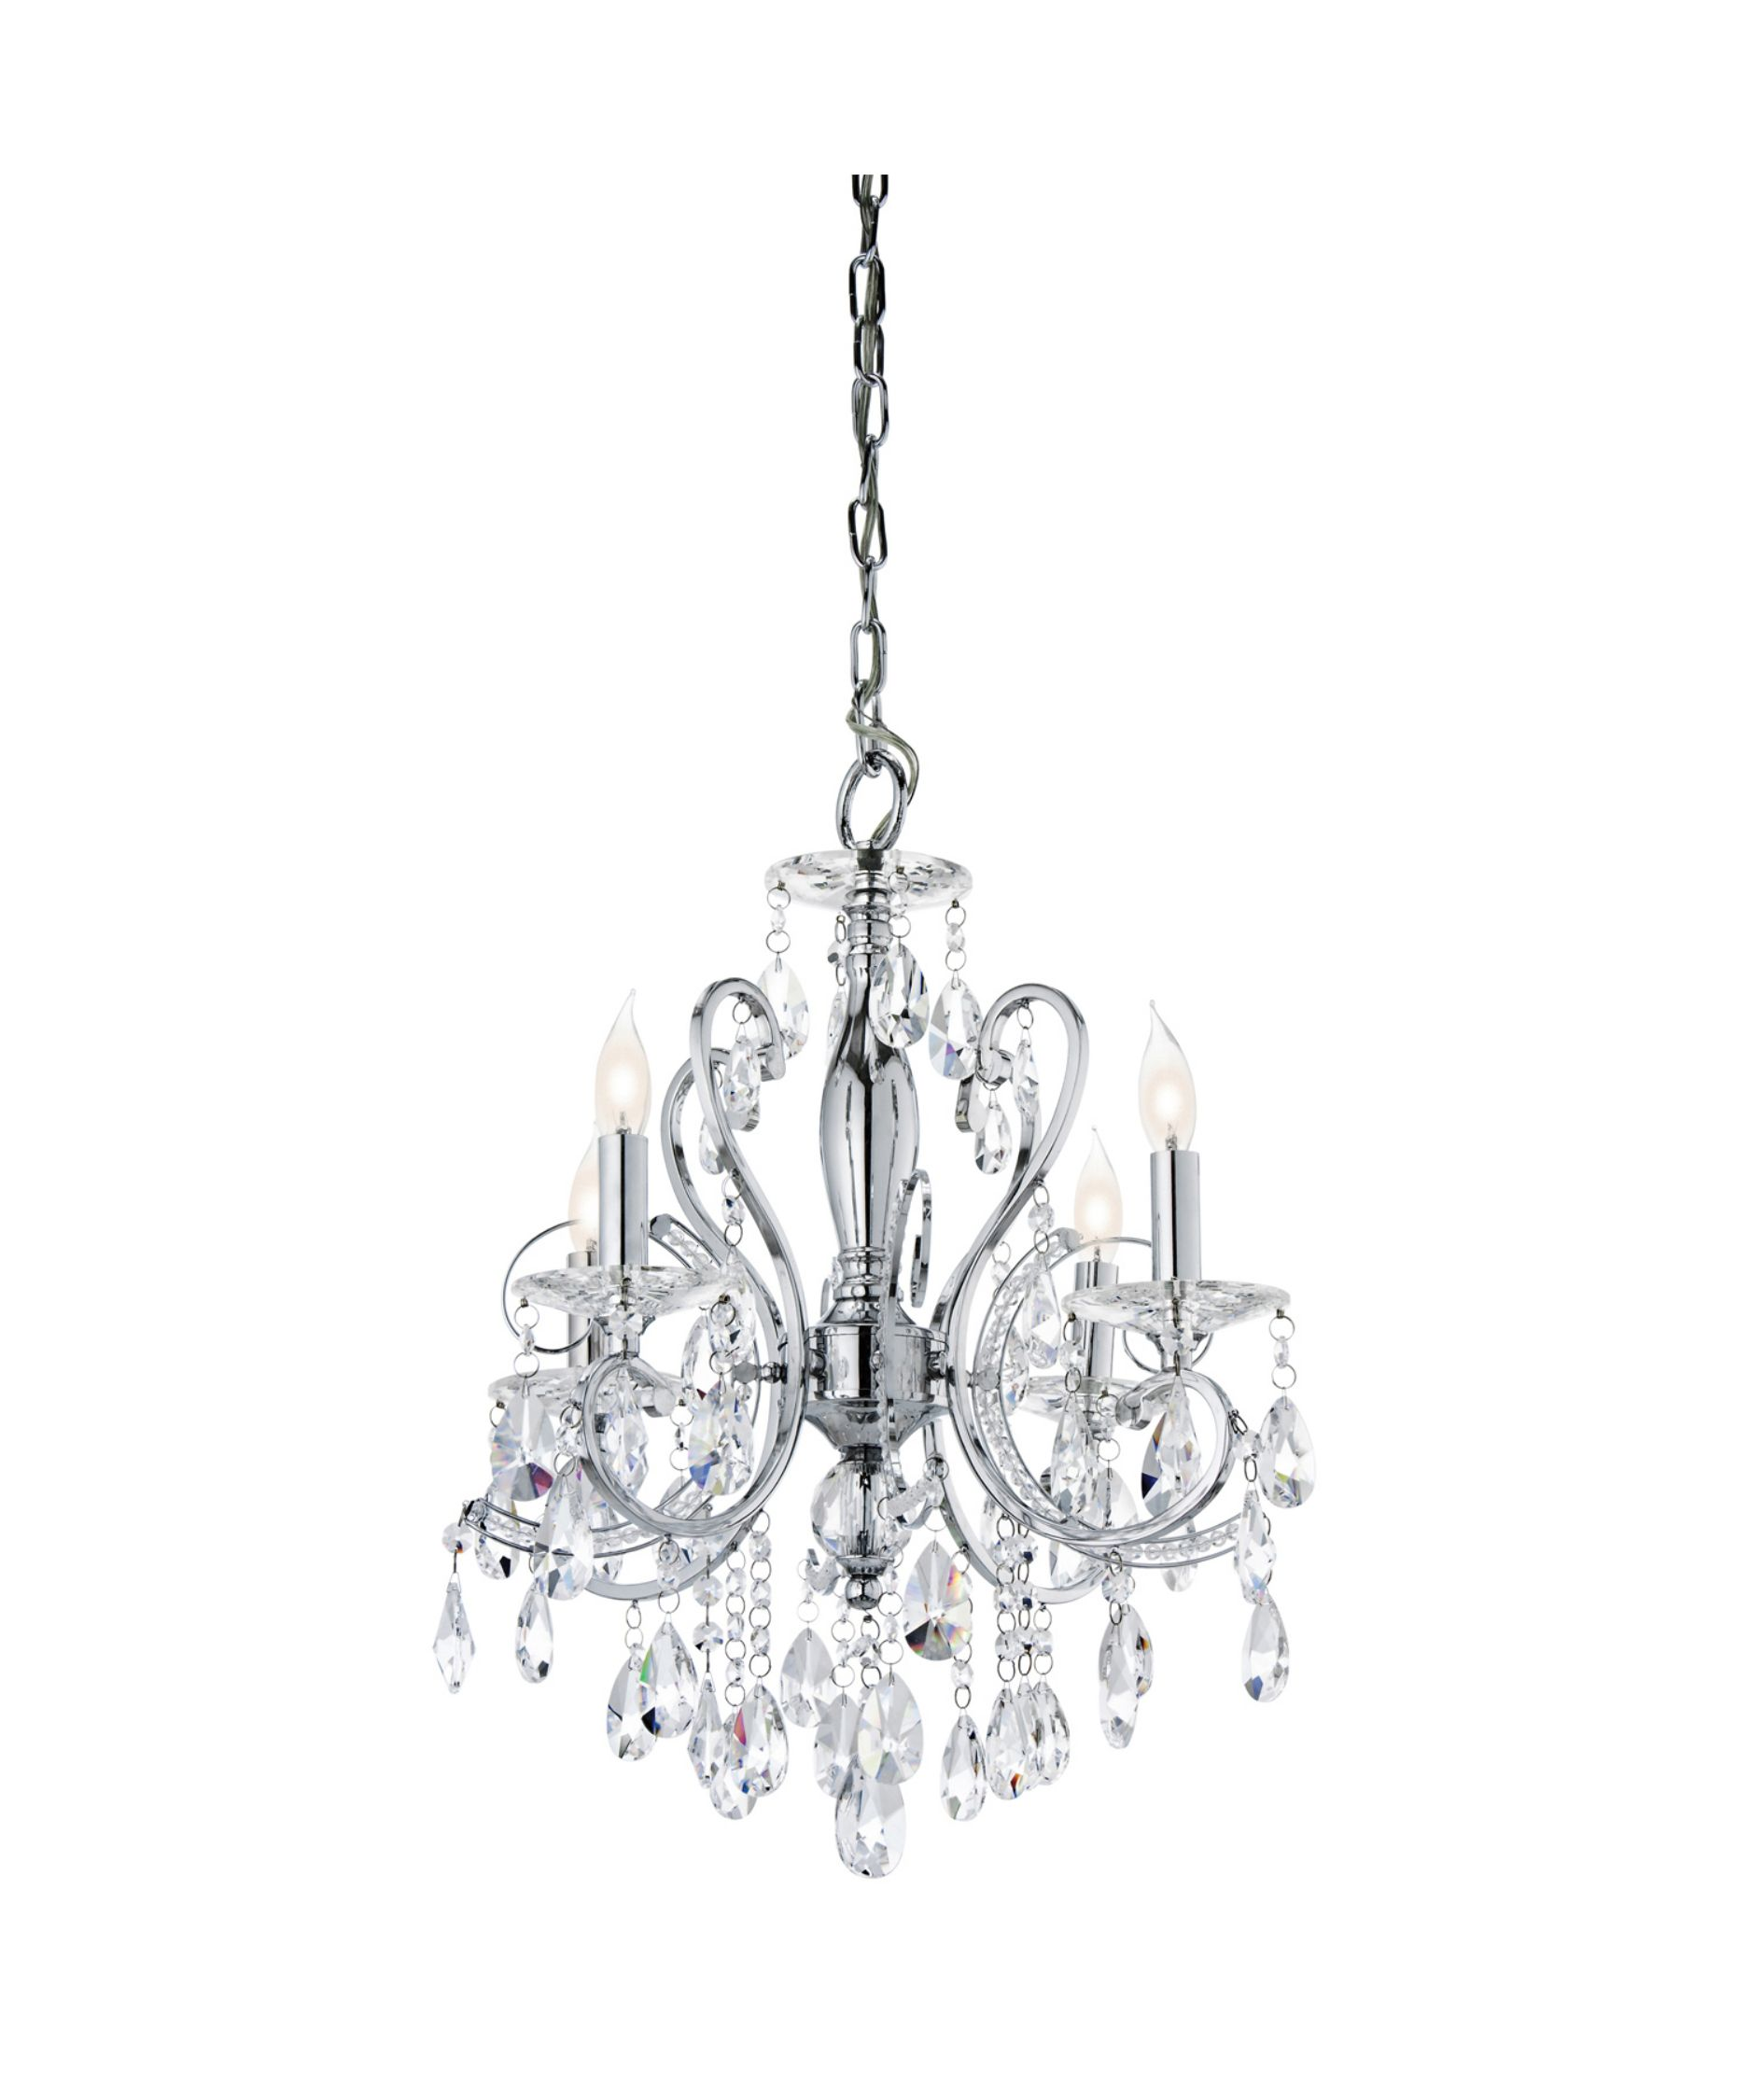 small black crystal chandelier # 38